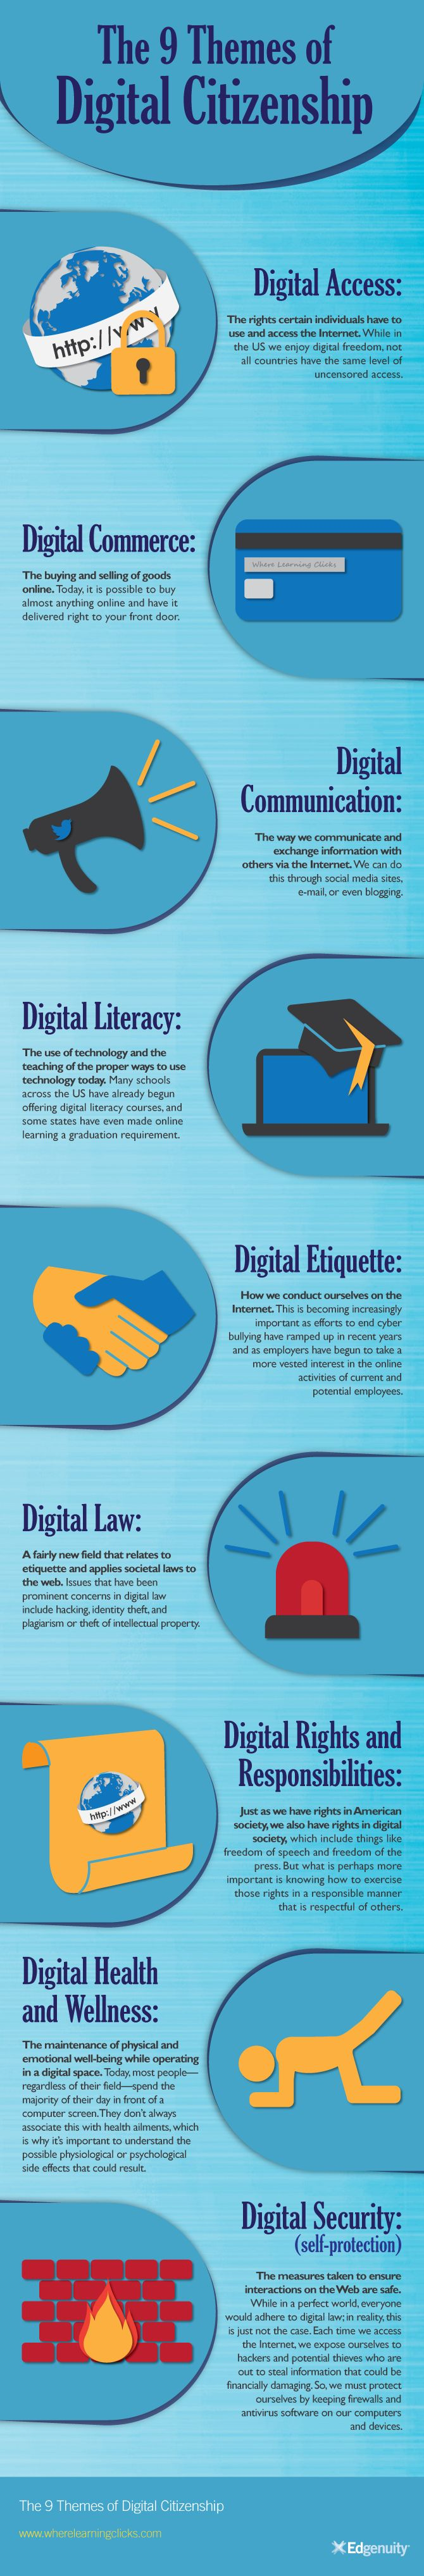 How to Teach the 9 Themes of Digital Citizenship Infographic - http://elearninginfographics.com/how-to-teach-the-9-themes-of-digital-citizenship-infographic/